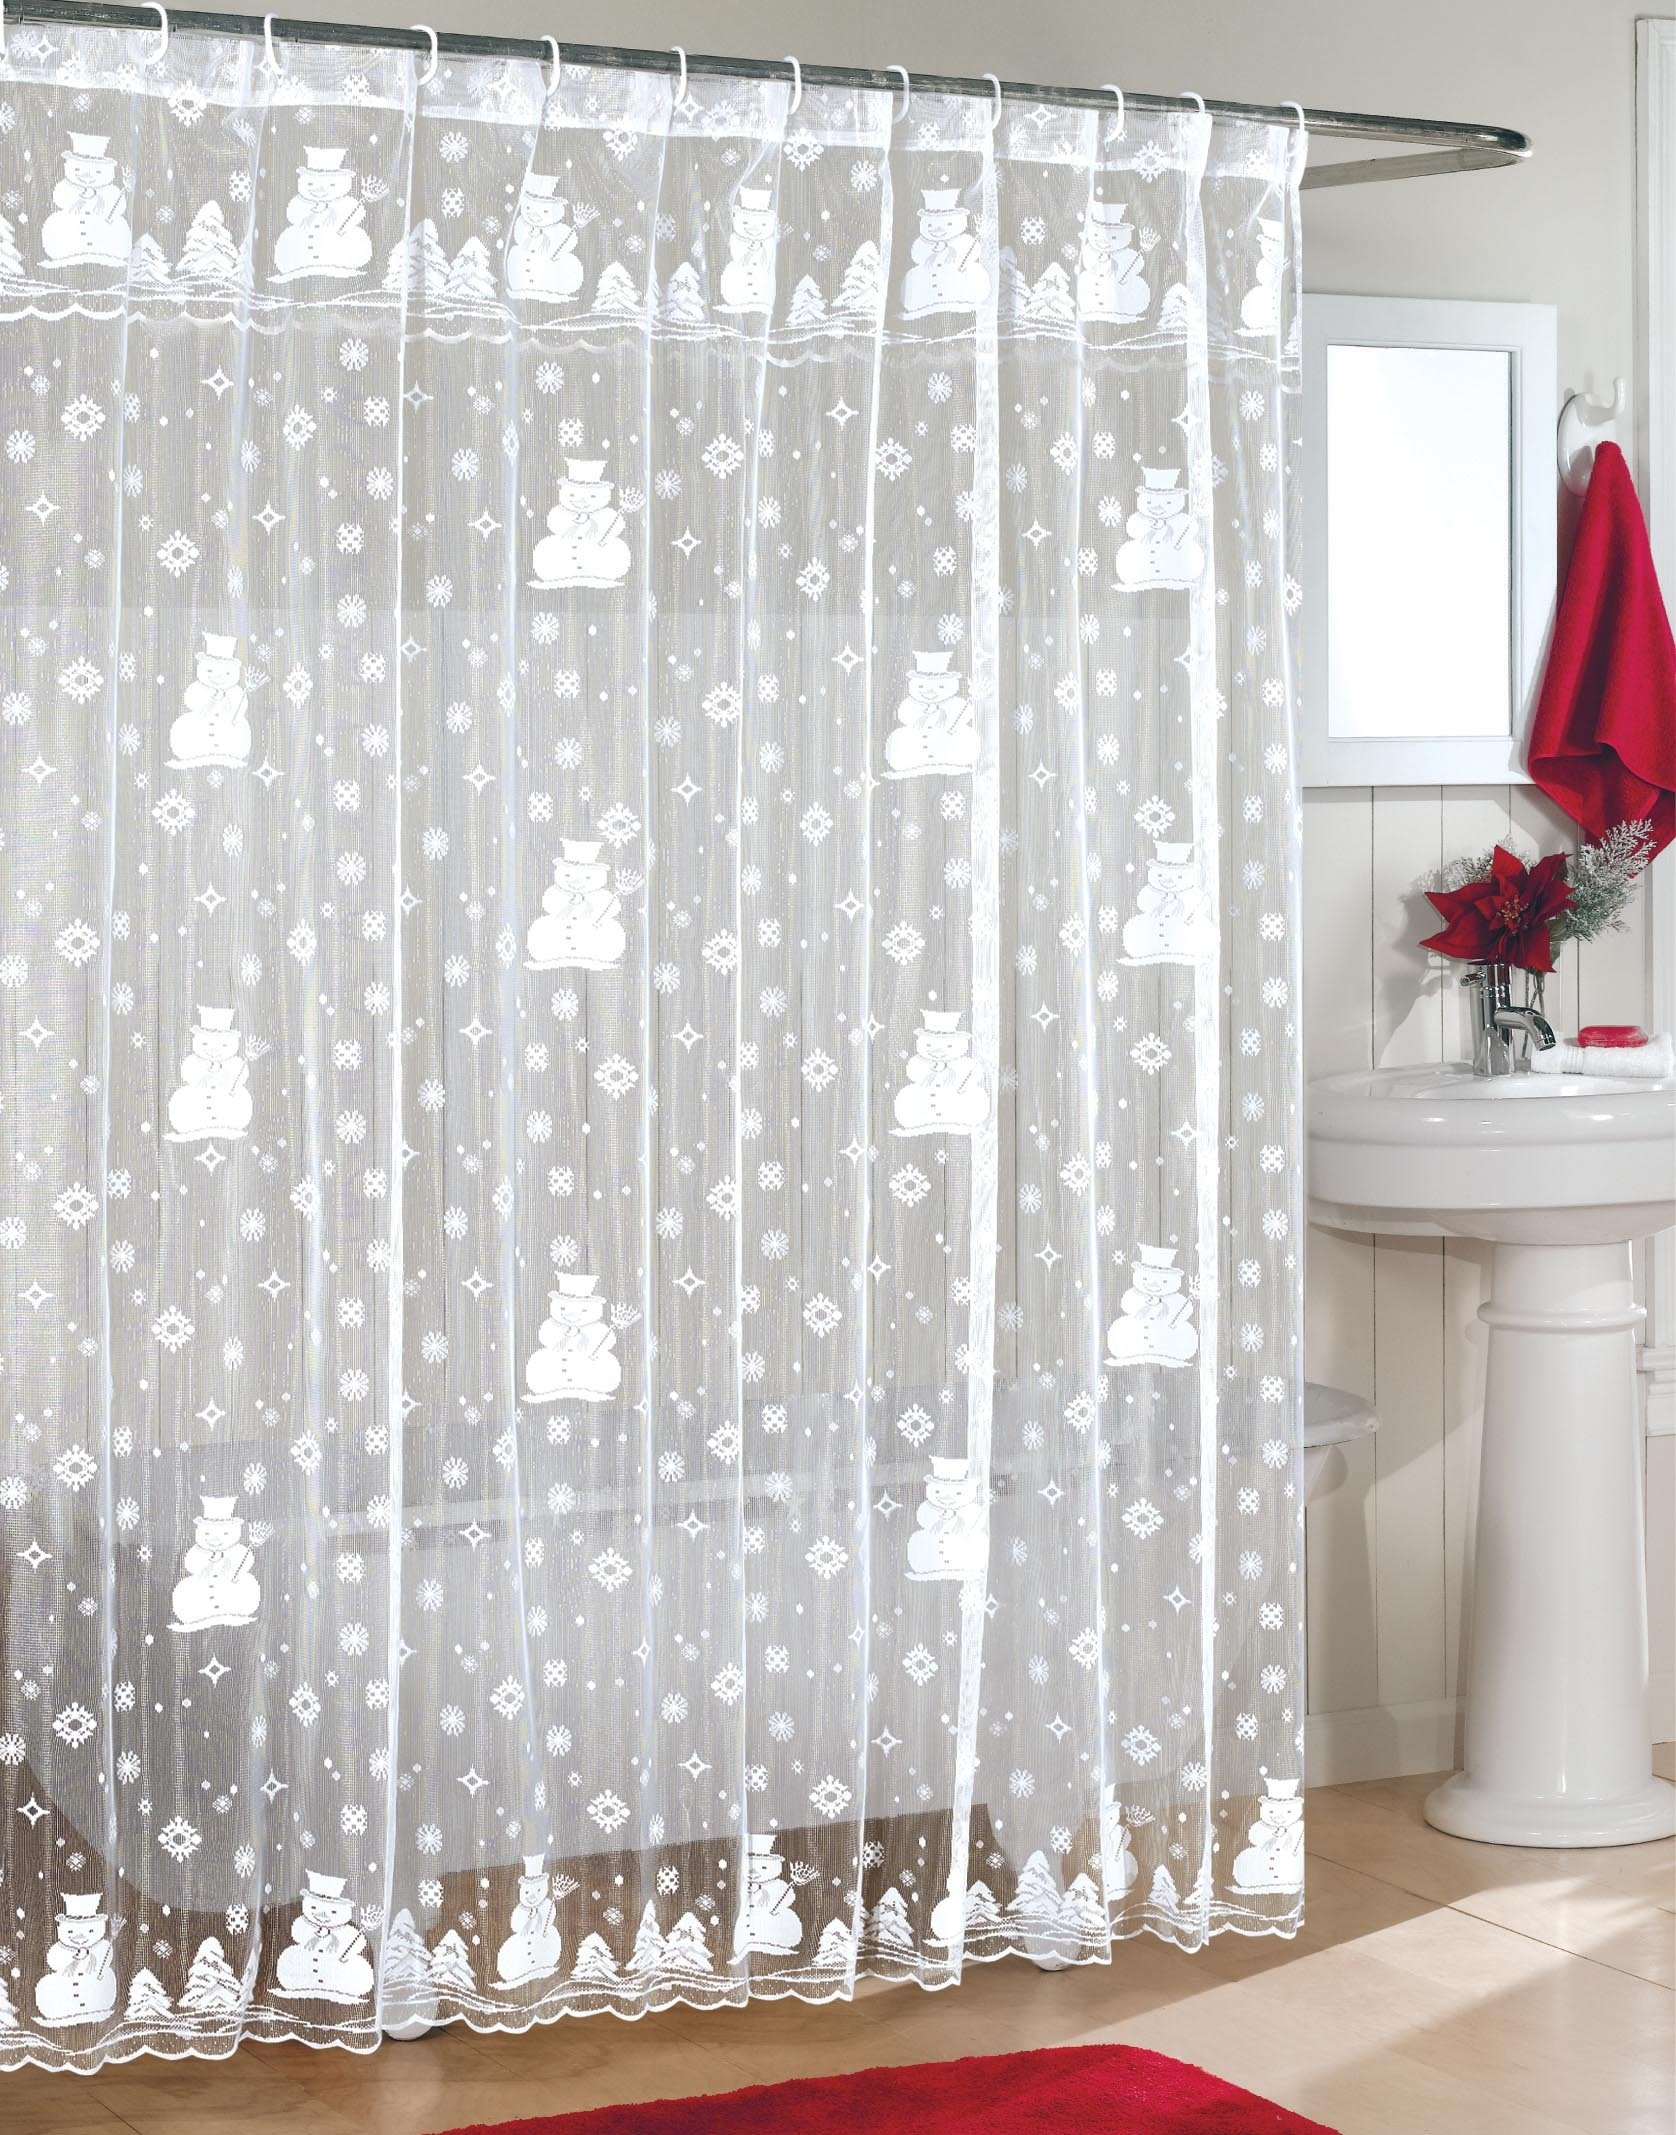 Lace Snowman Shower Curtain For That Elegant Look